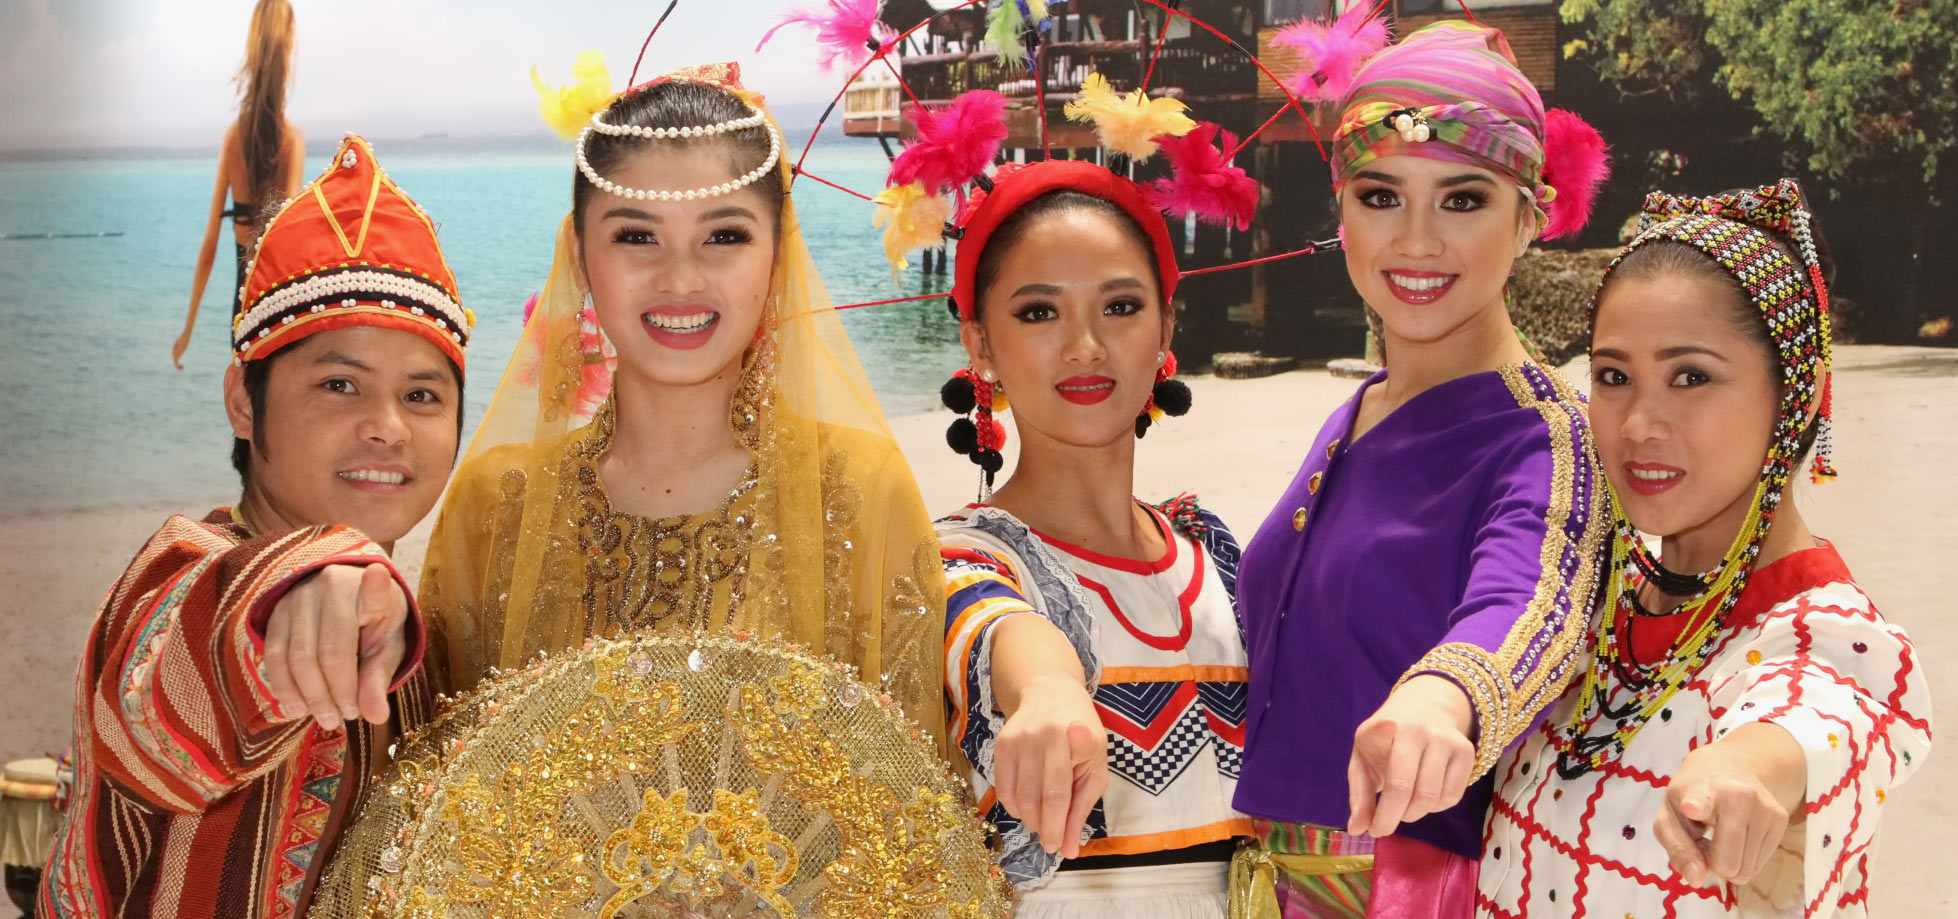 Dancers from The Philippines at WTM London